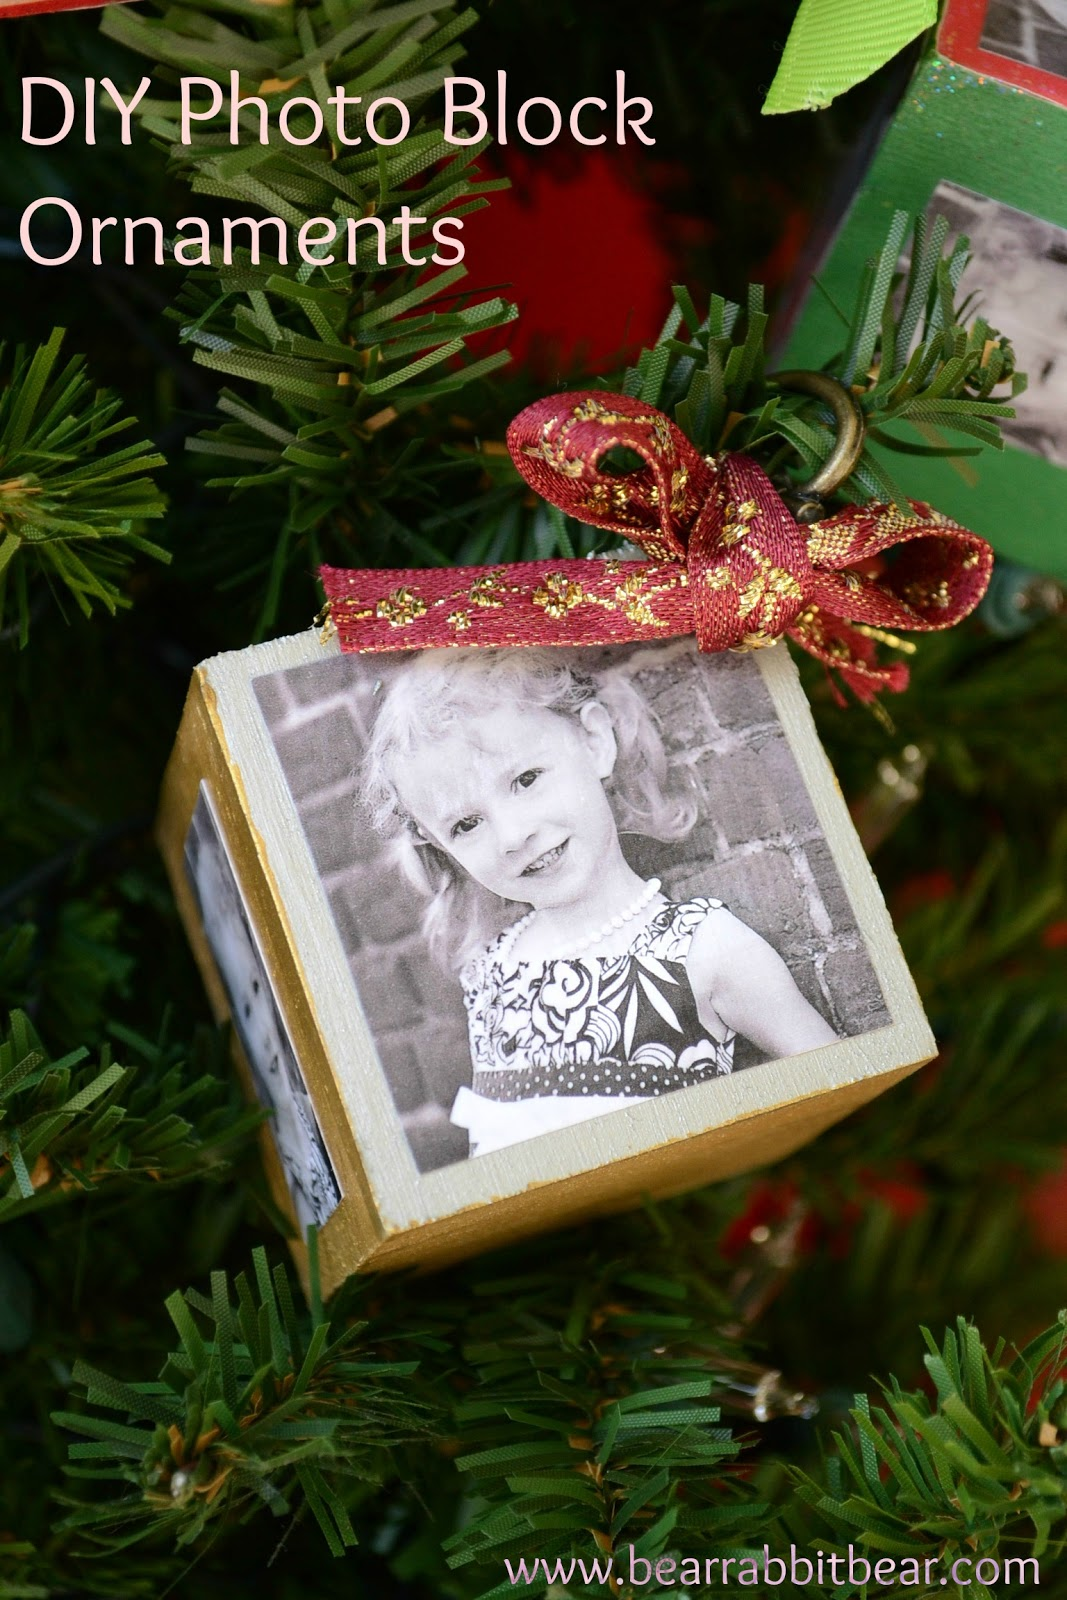 DIY Photo Block Ornaments